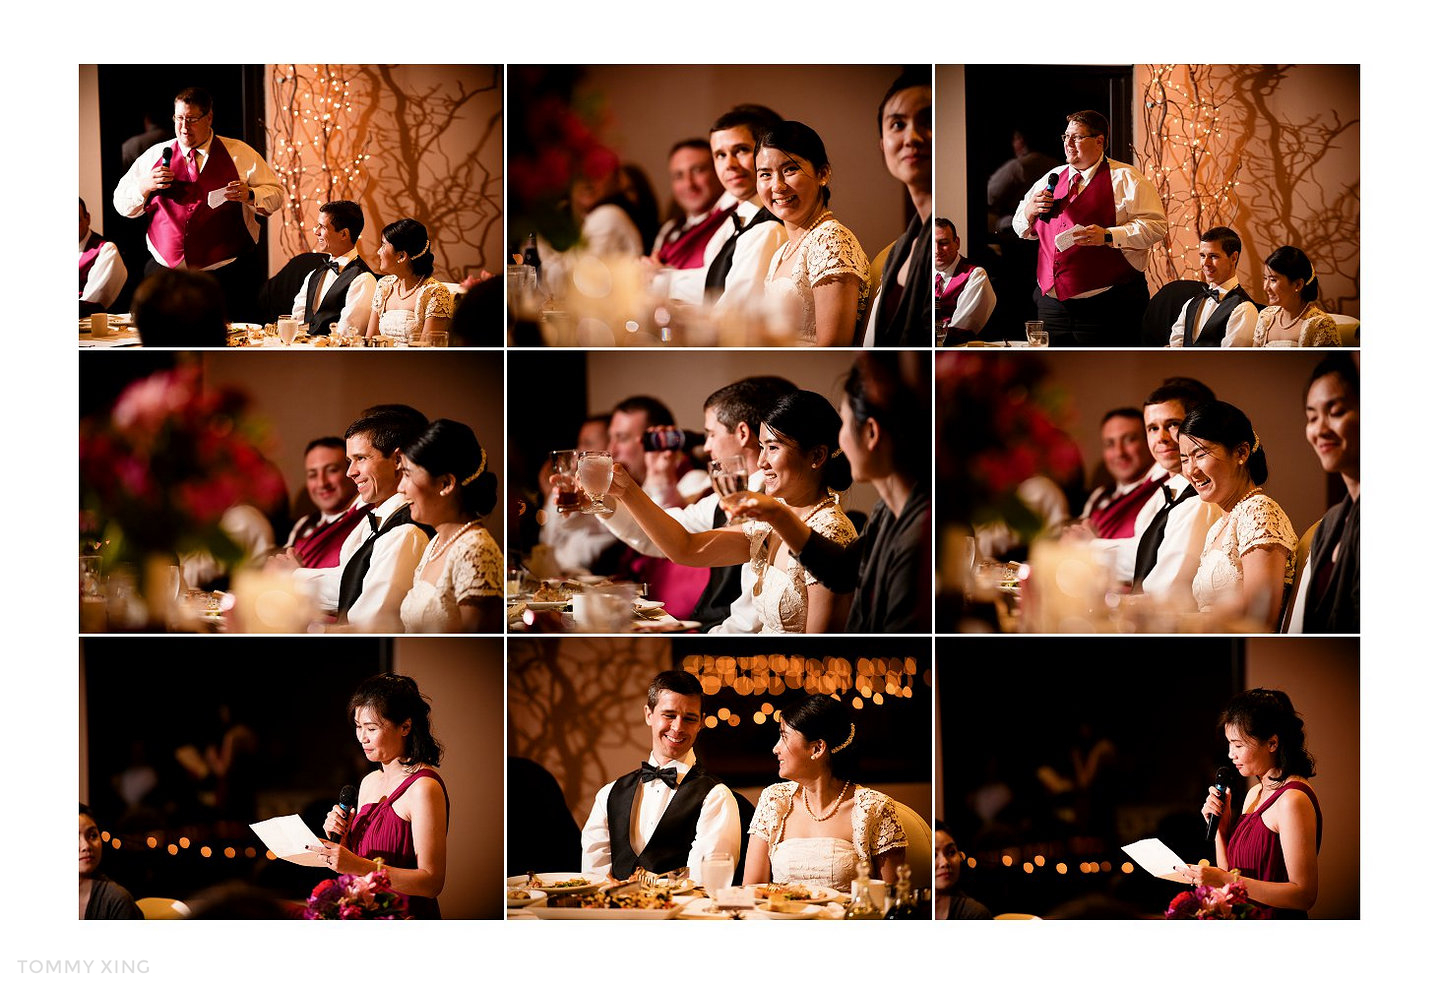 Tommy Xing Photography Seattle CAVE B ESTATE WINERY wedding 西雅图酒庄婚礼 39.jpg